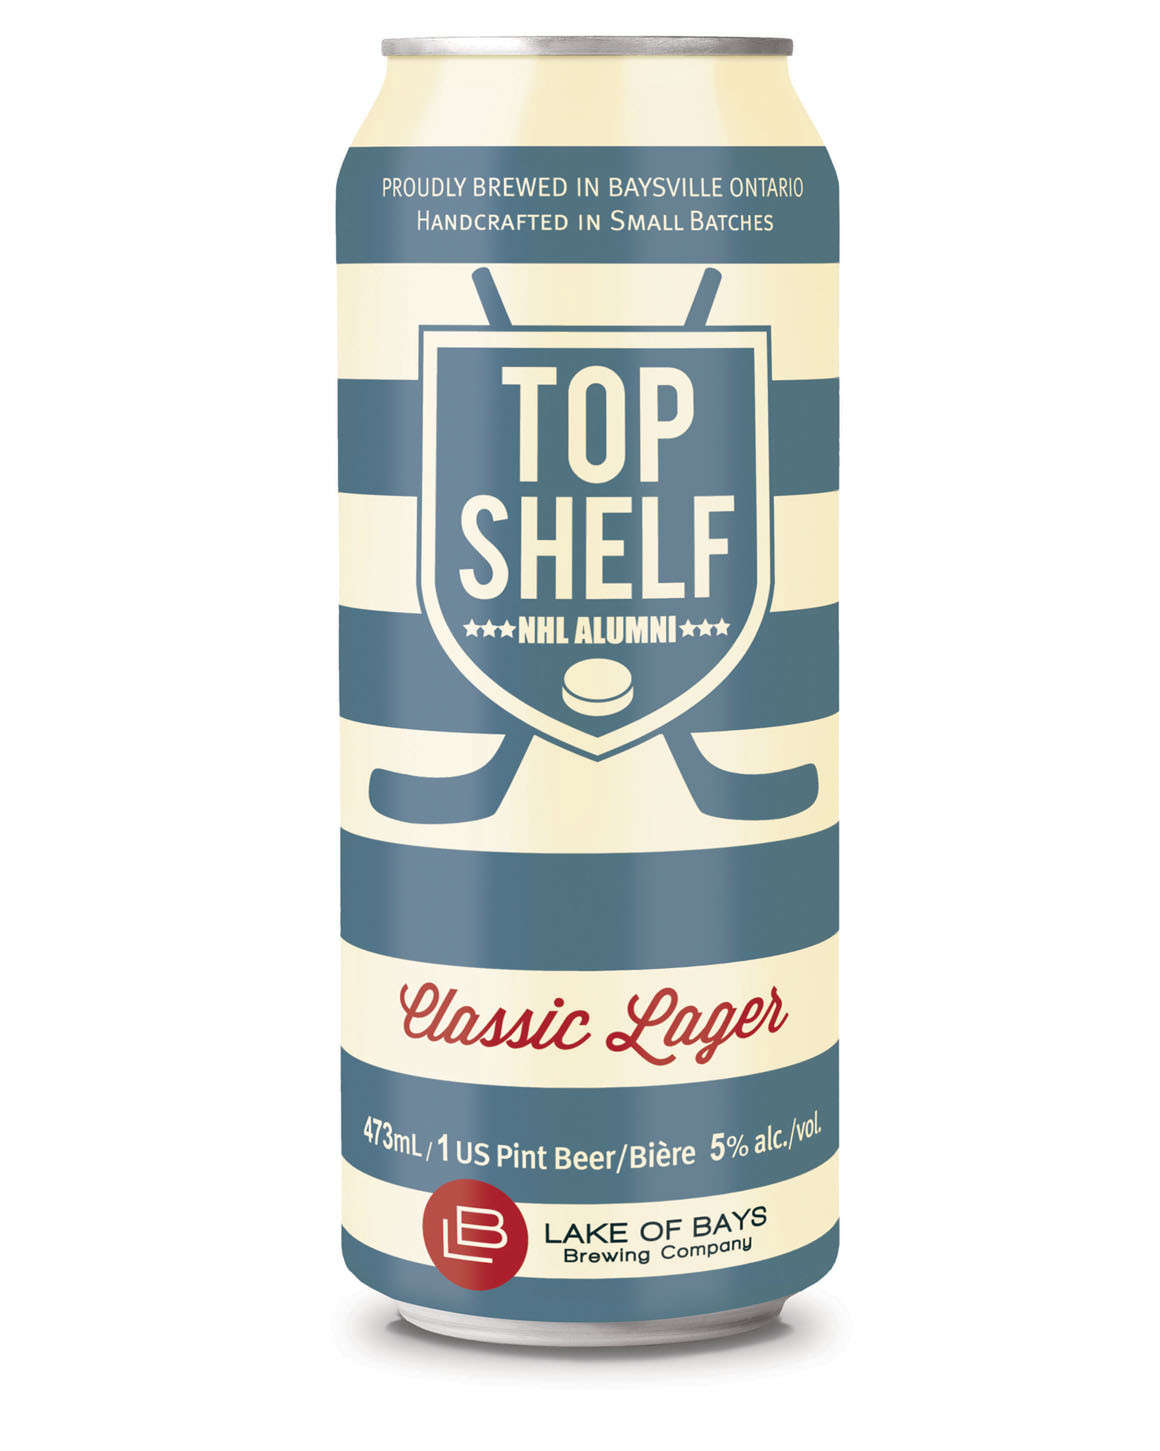 Lake of Bays Top Shelf package design – Luke Despatie and The Design Firm